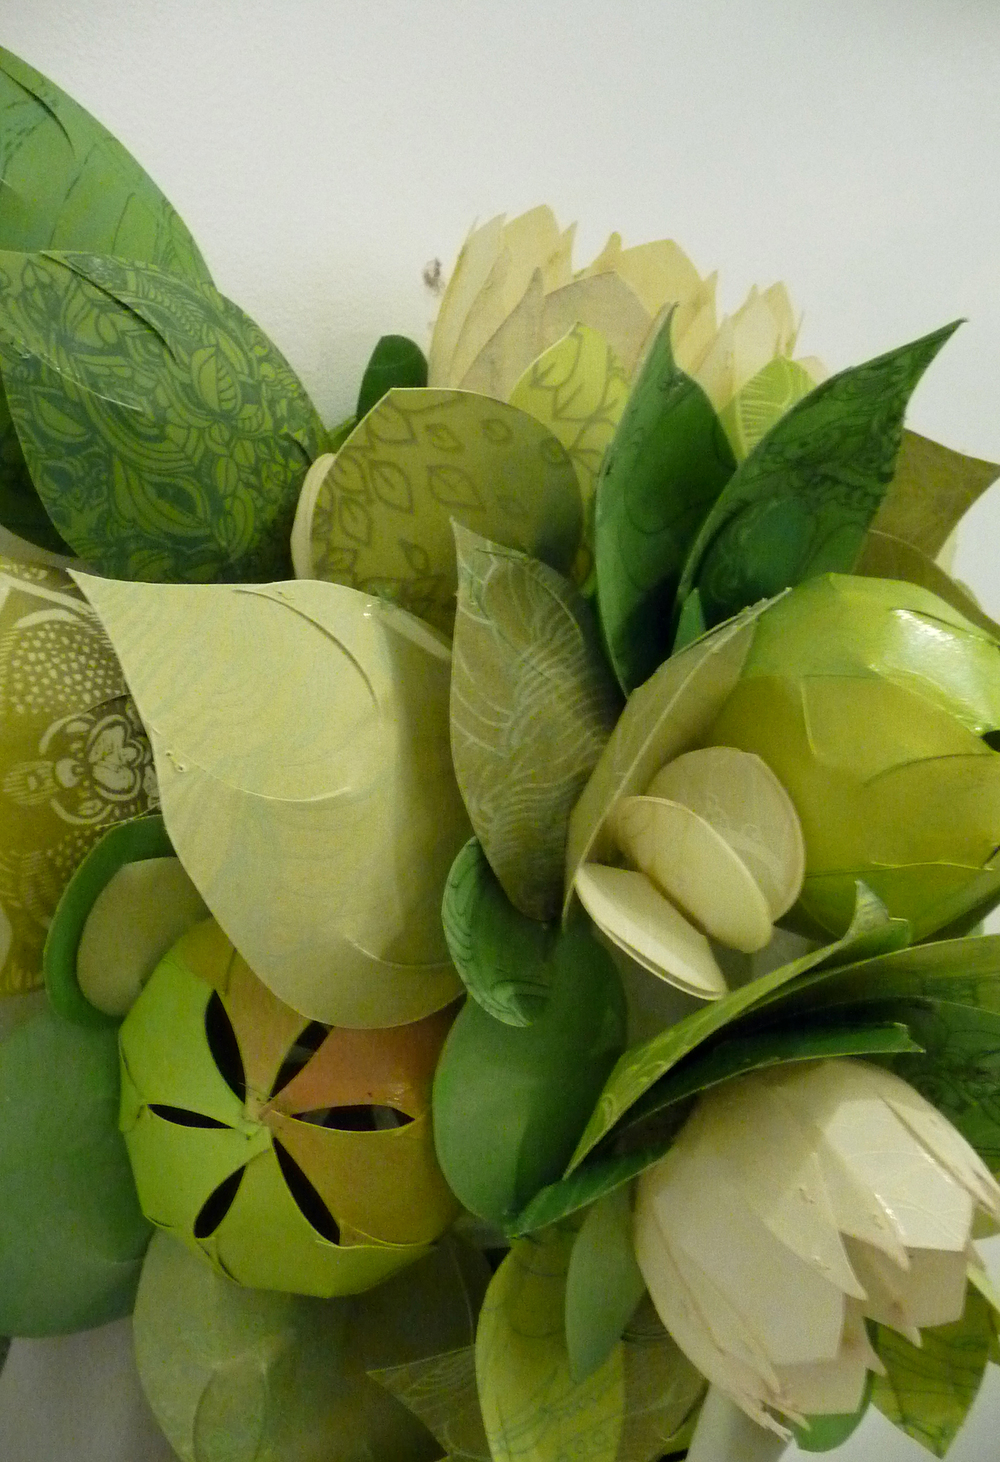 Tulips and Tomatillos